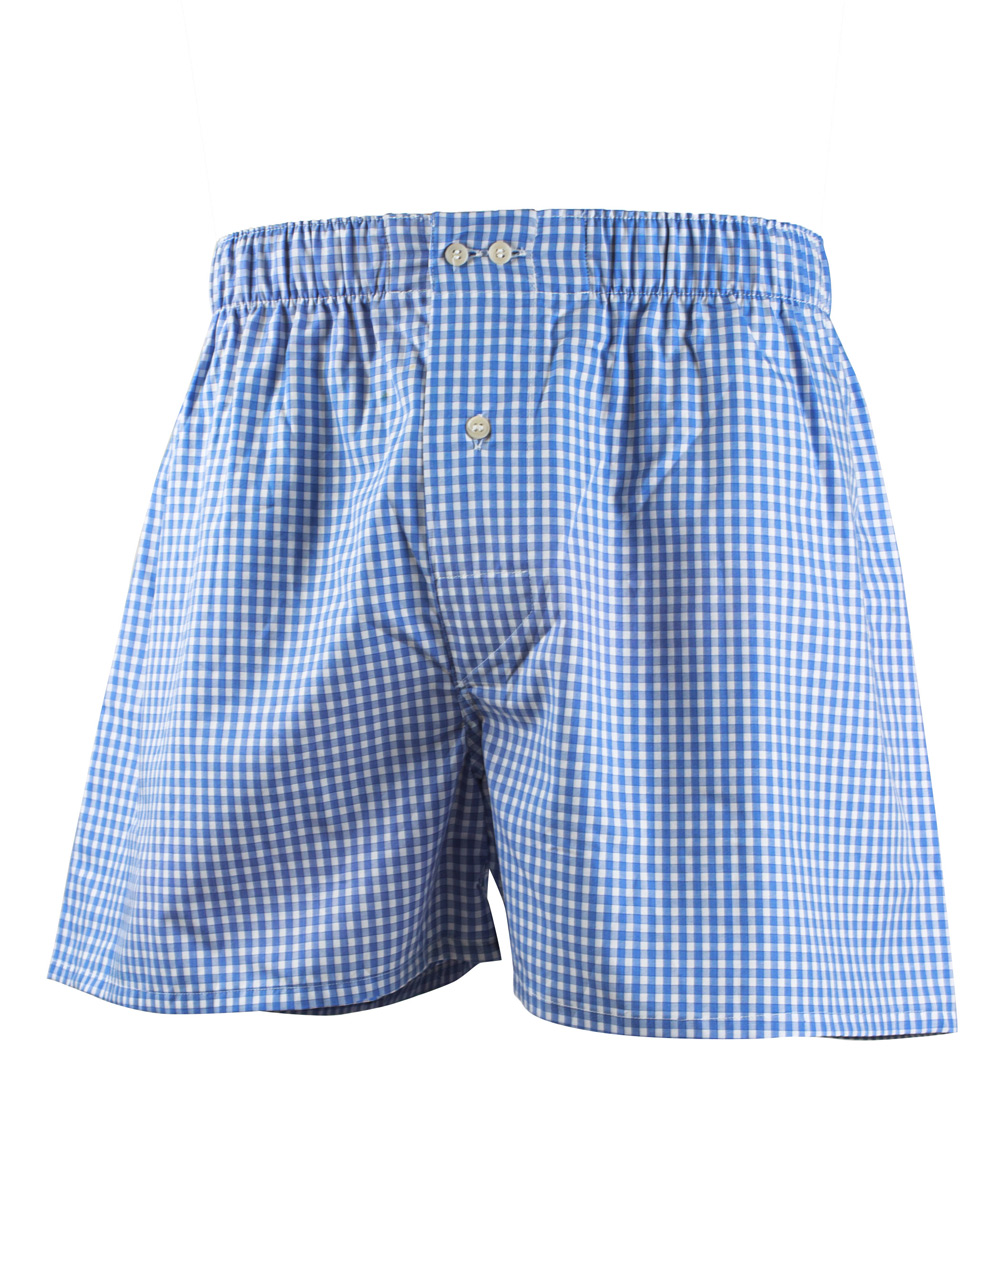 Blue boxer shorts - Backside